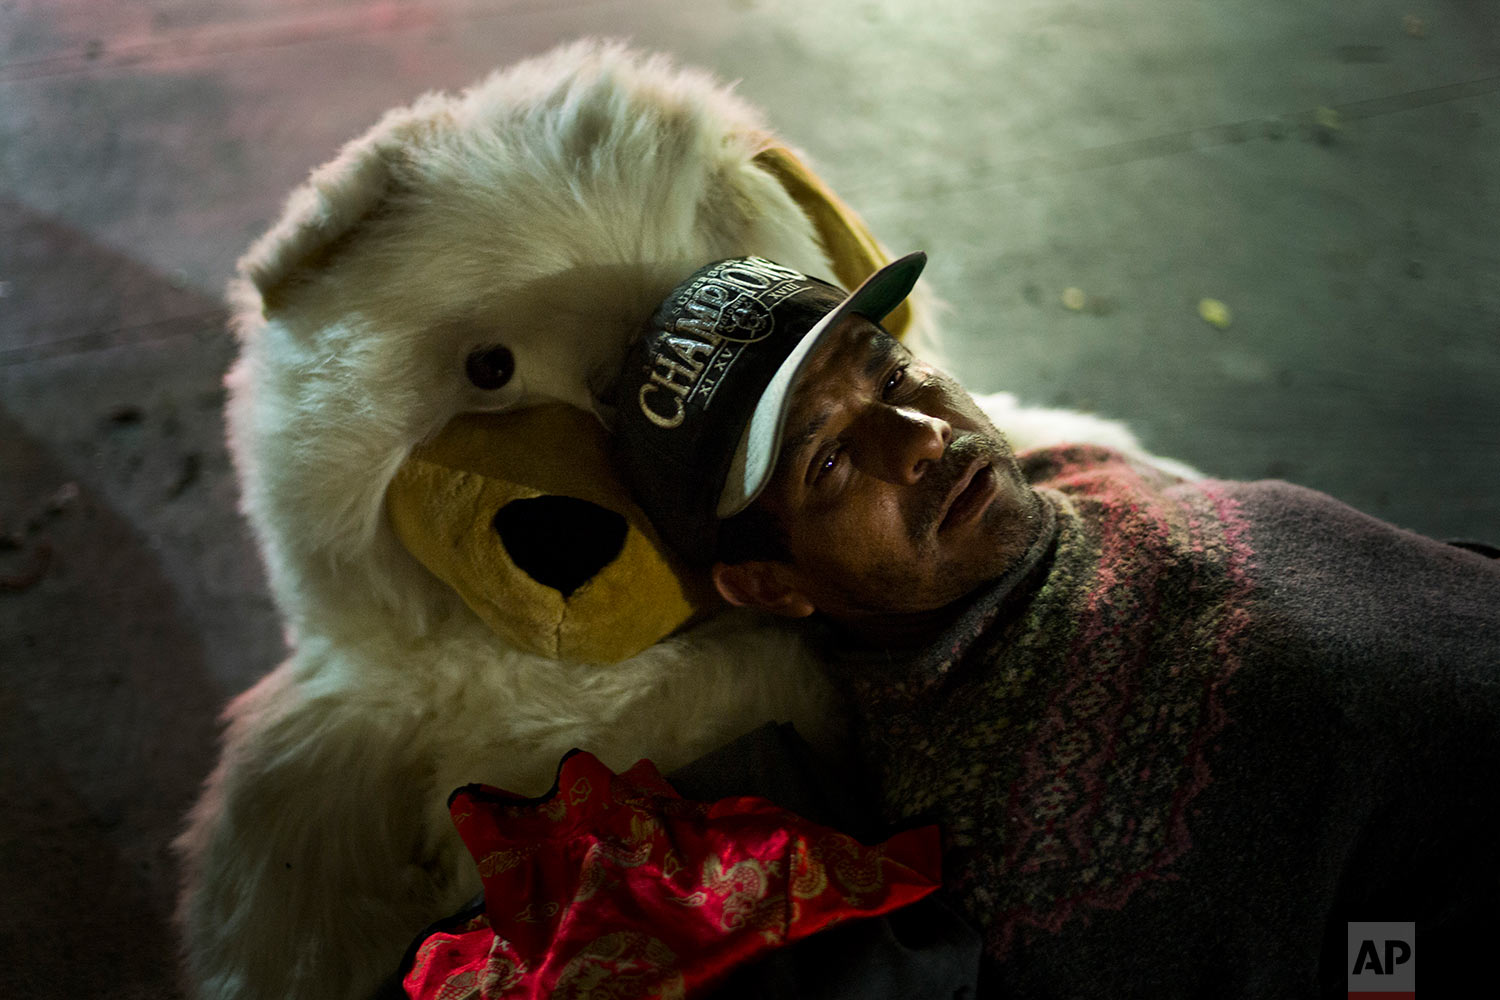 Using a teddy bear named Michelle as a pillow, Manuel Martinez, a 45-year-old homeless day laborer originally from Mexico, falls asleep on a sidewalk in the Skid Row area of downtown Los Angeles, Thursday, Nov. 2, 2017. Martinez said he has been an alcoholic more than a decade. (AP Photo/Jae C. Hong)